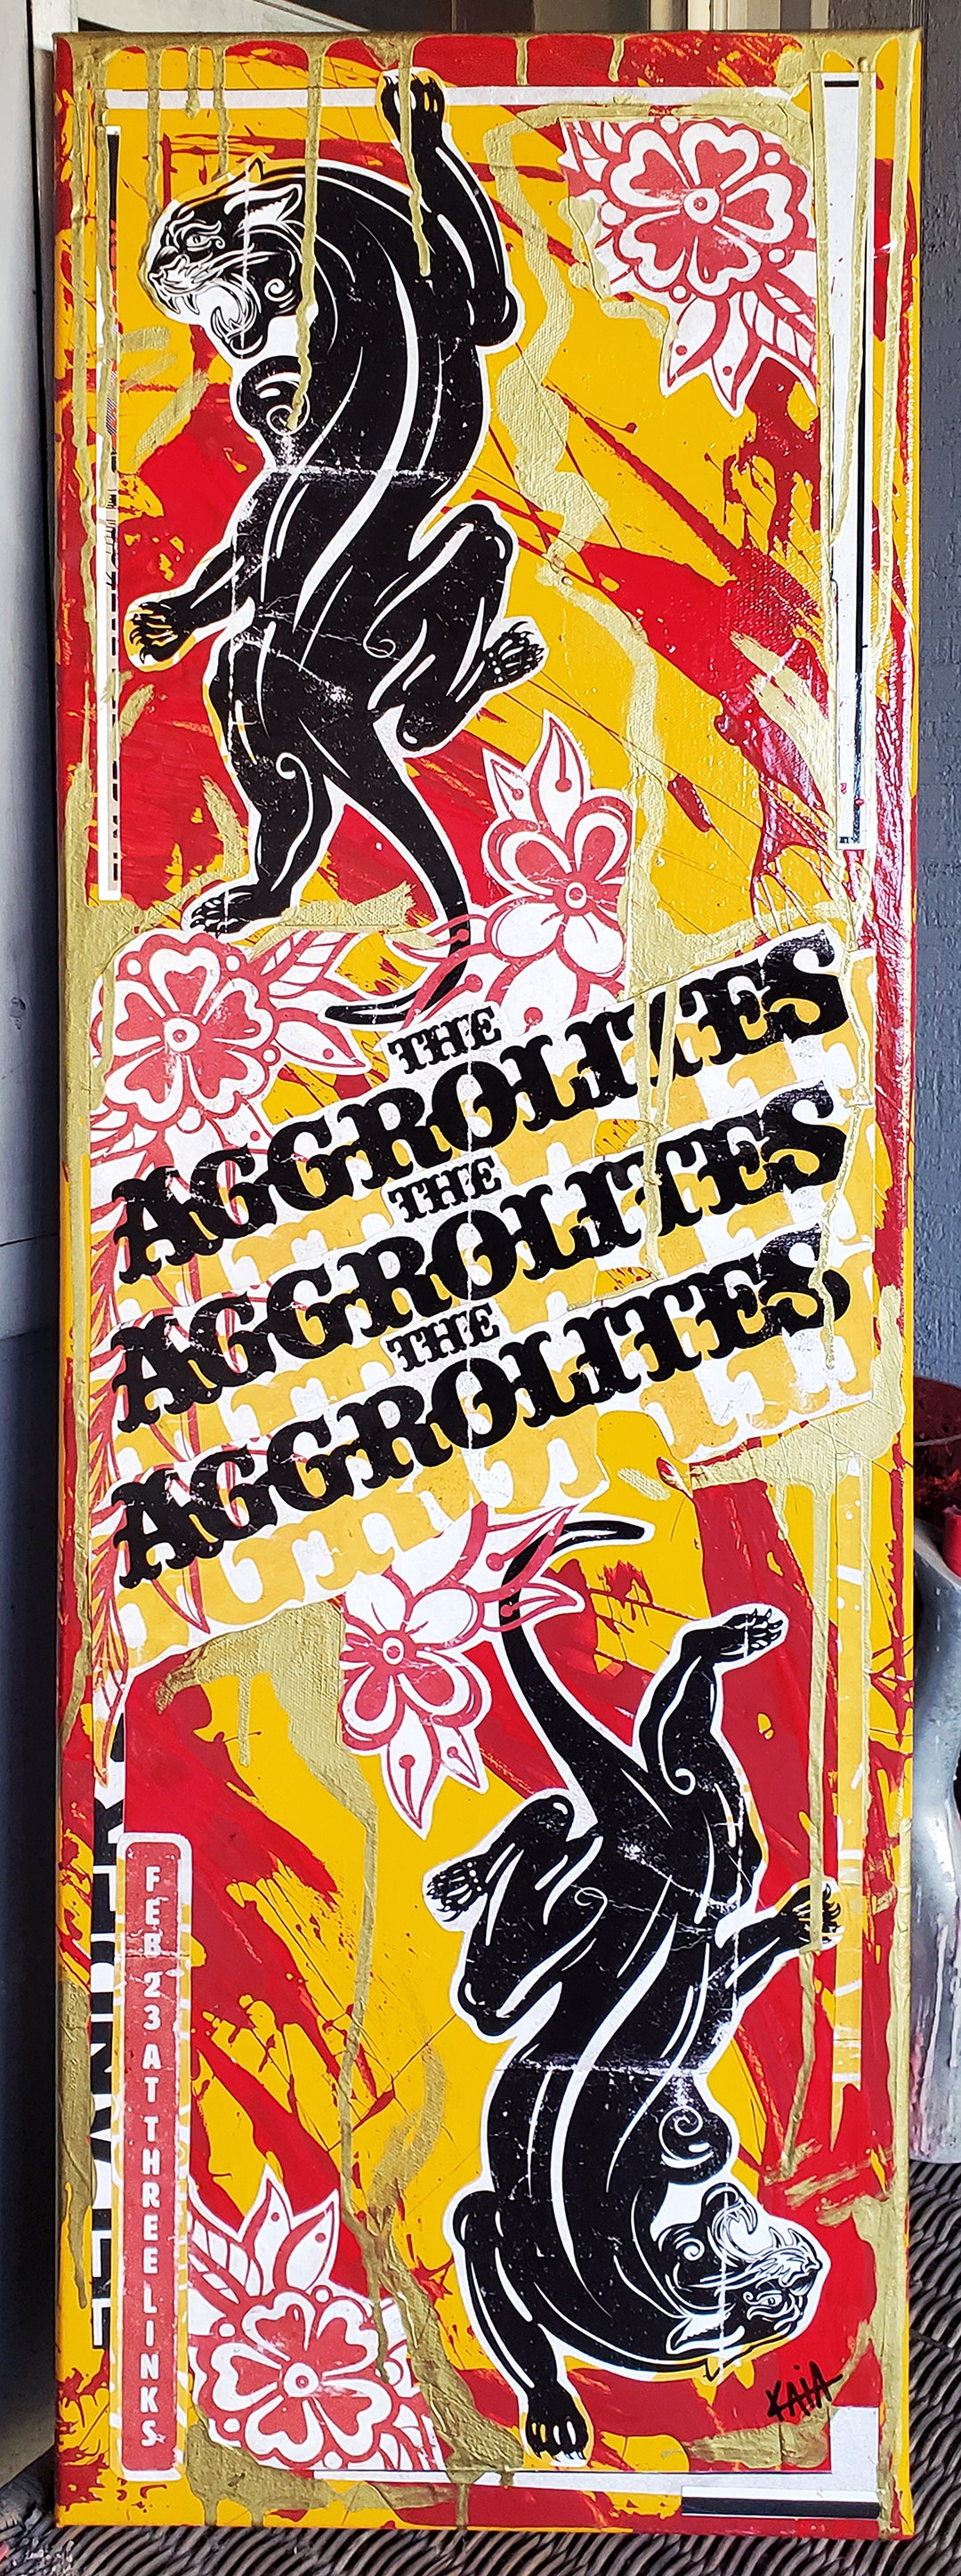 The Aggrolites 2020 (12x36 canvas)